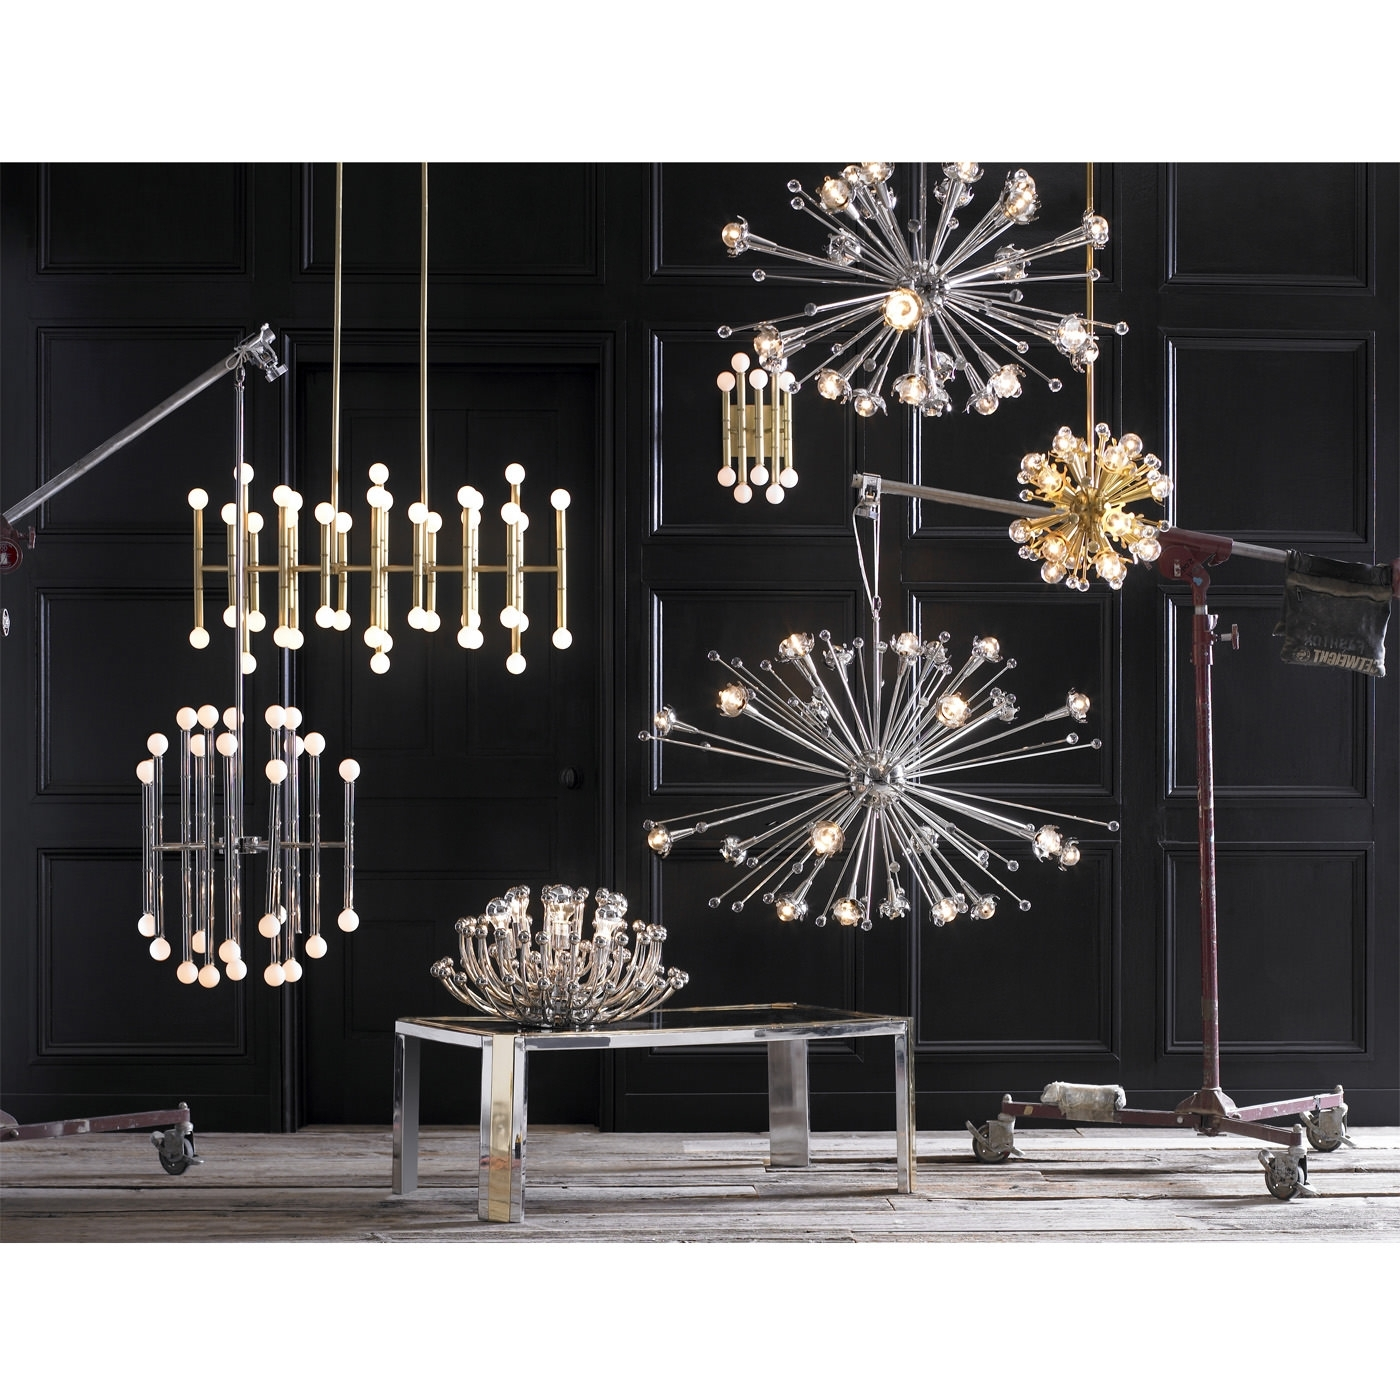 Jonathan Adler For Mini Sputnik Chandeliers (View 12 of 20)